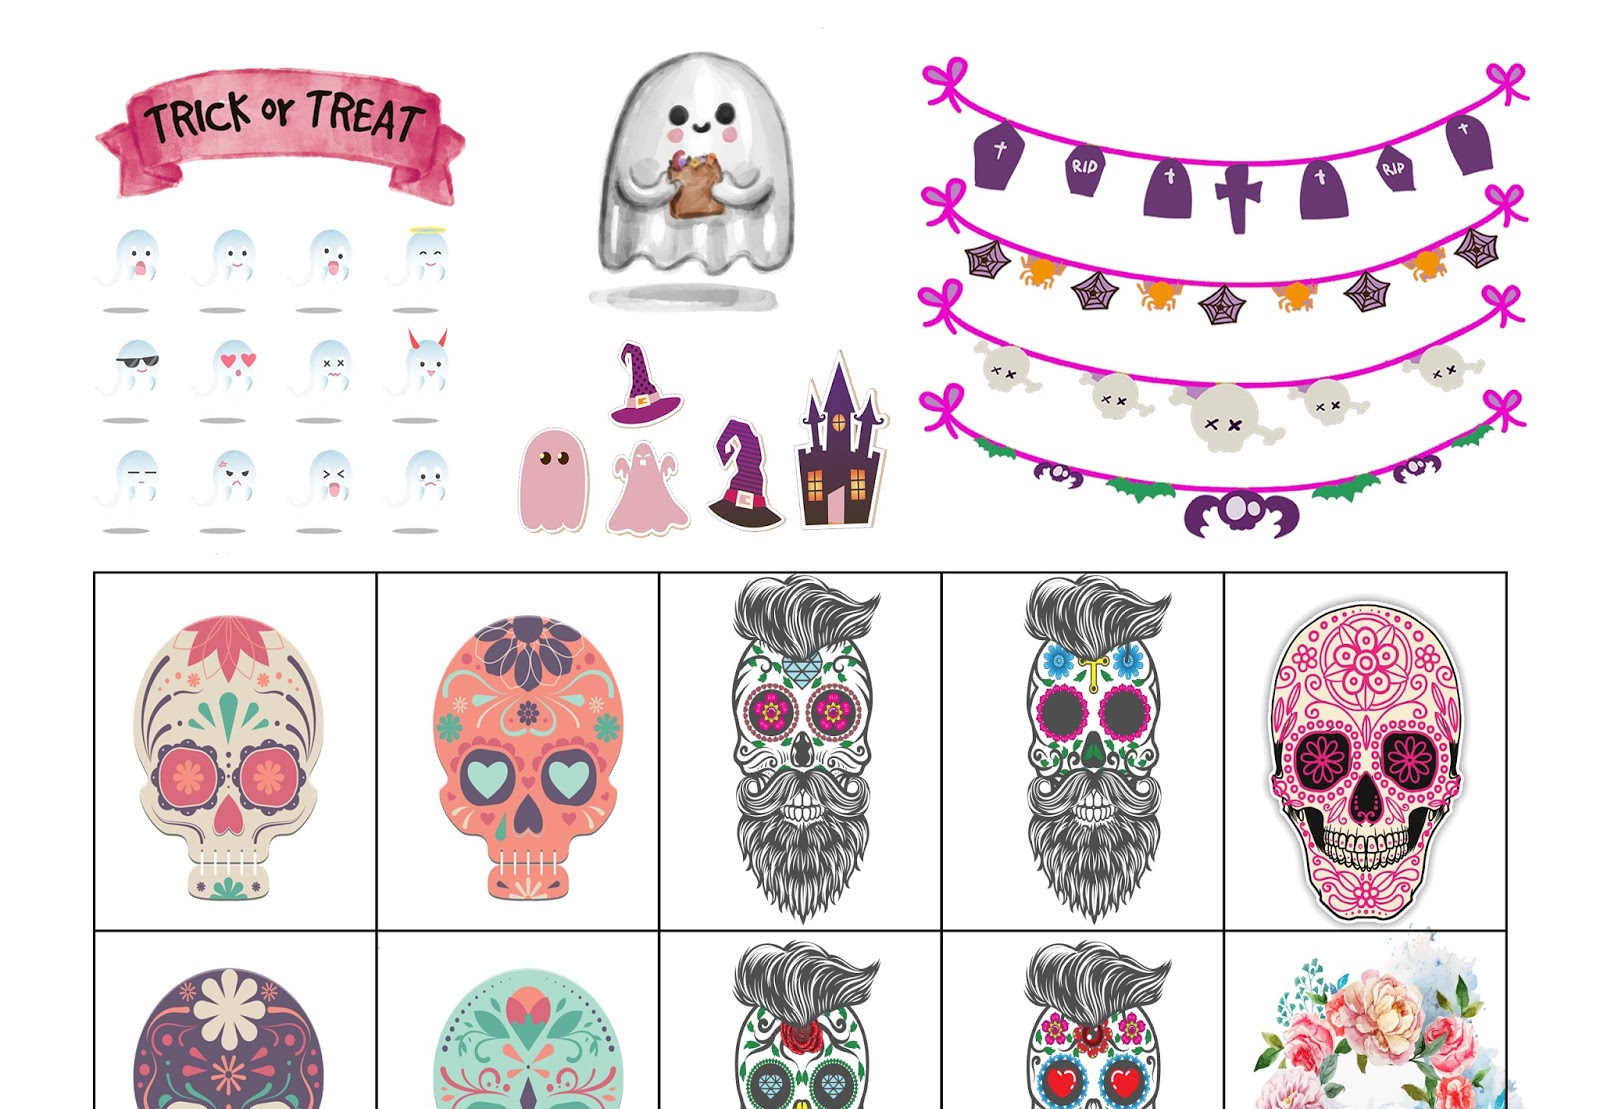 photograph about Halloween Stickers Printable called Malena Haas: ❤FREEBIE Friday❤ Halloween Sticker Printable